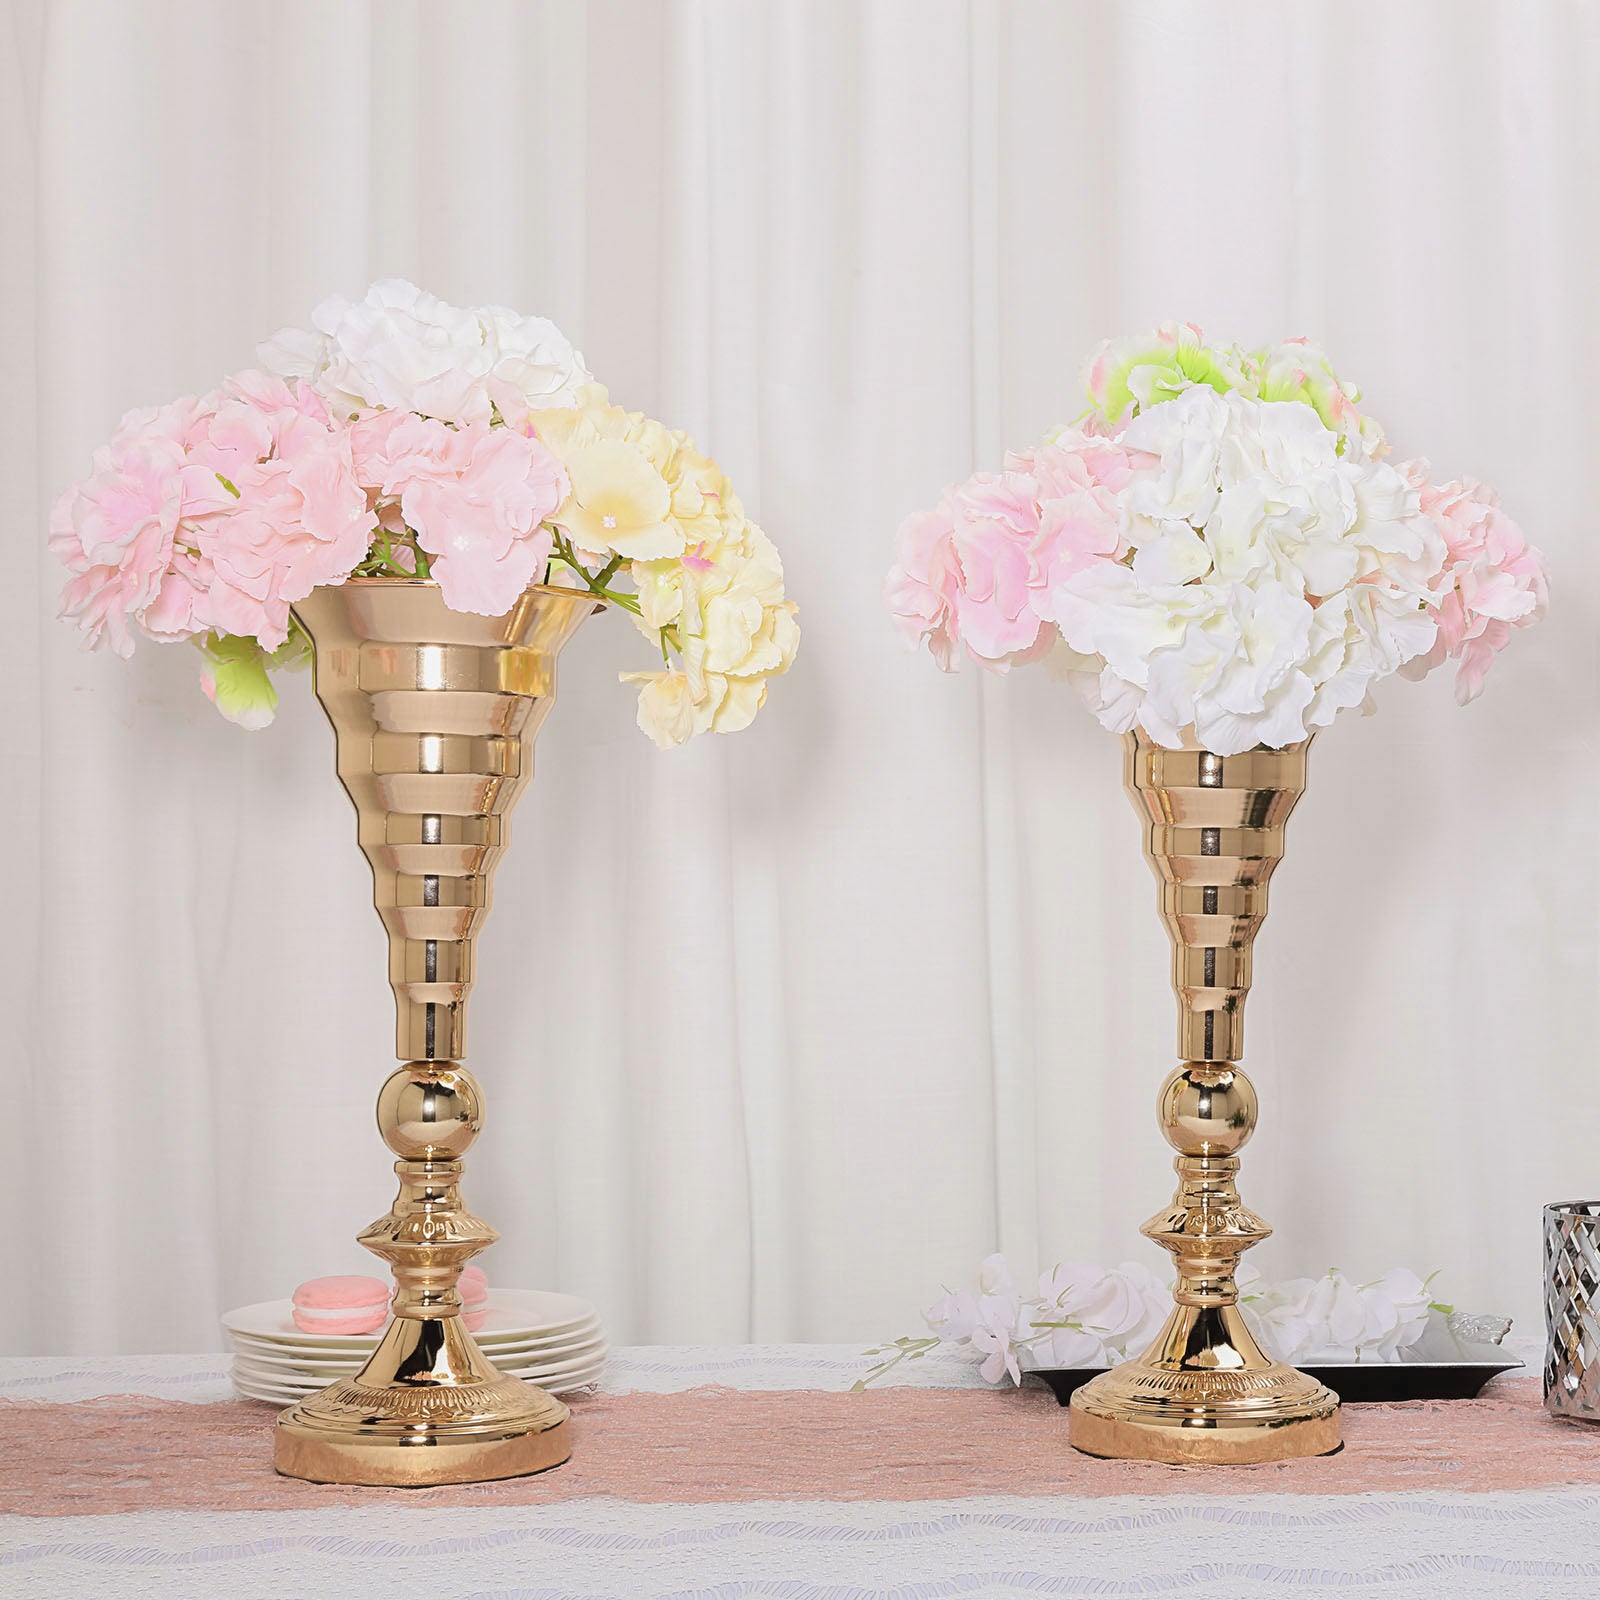 2 Pack 15 5 Tall Gold Trumpet Vase Metal Flower Vase Wedding Centerpieces Tableclothsfactory